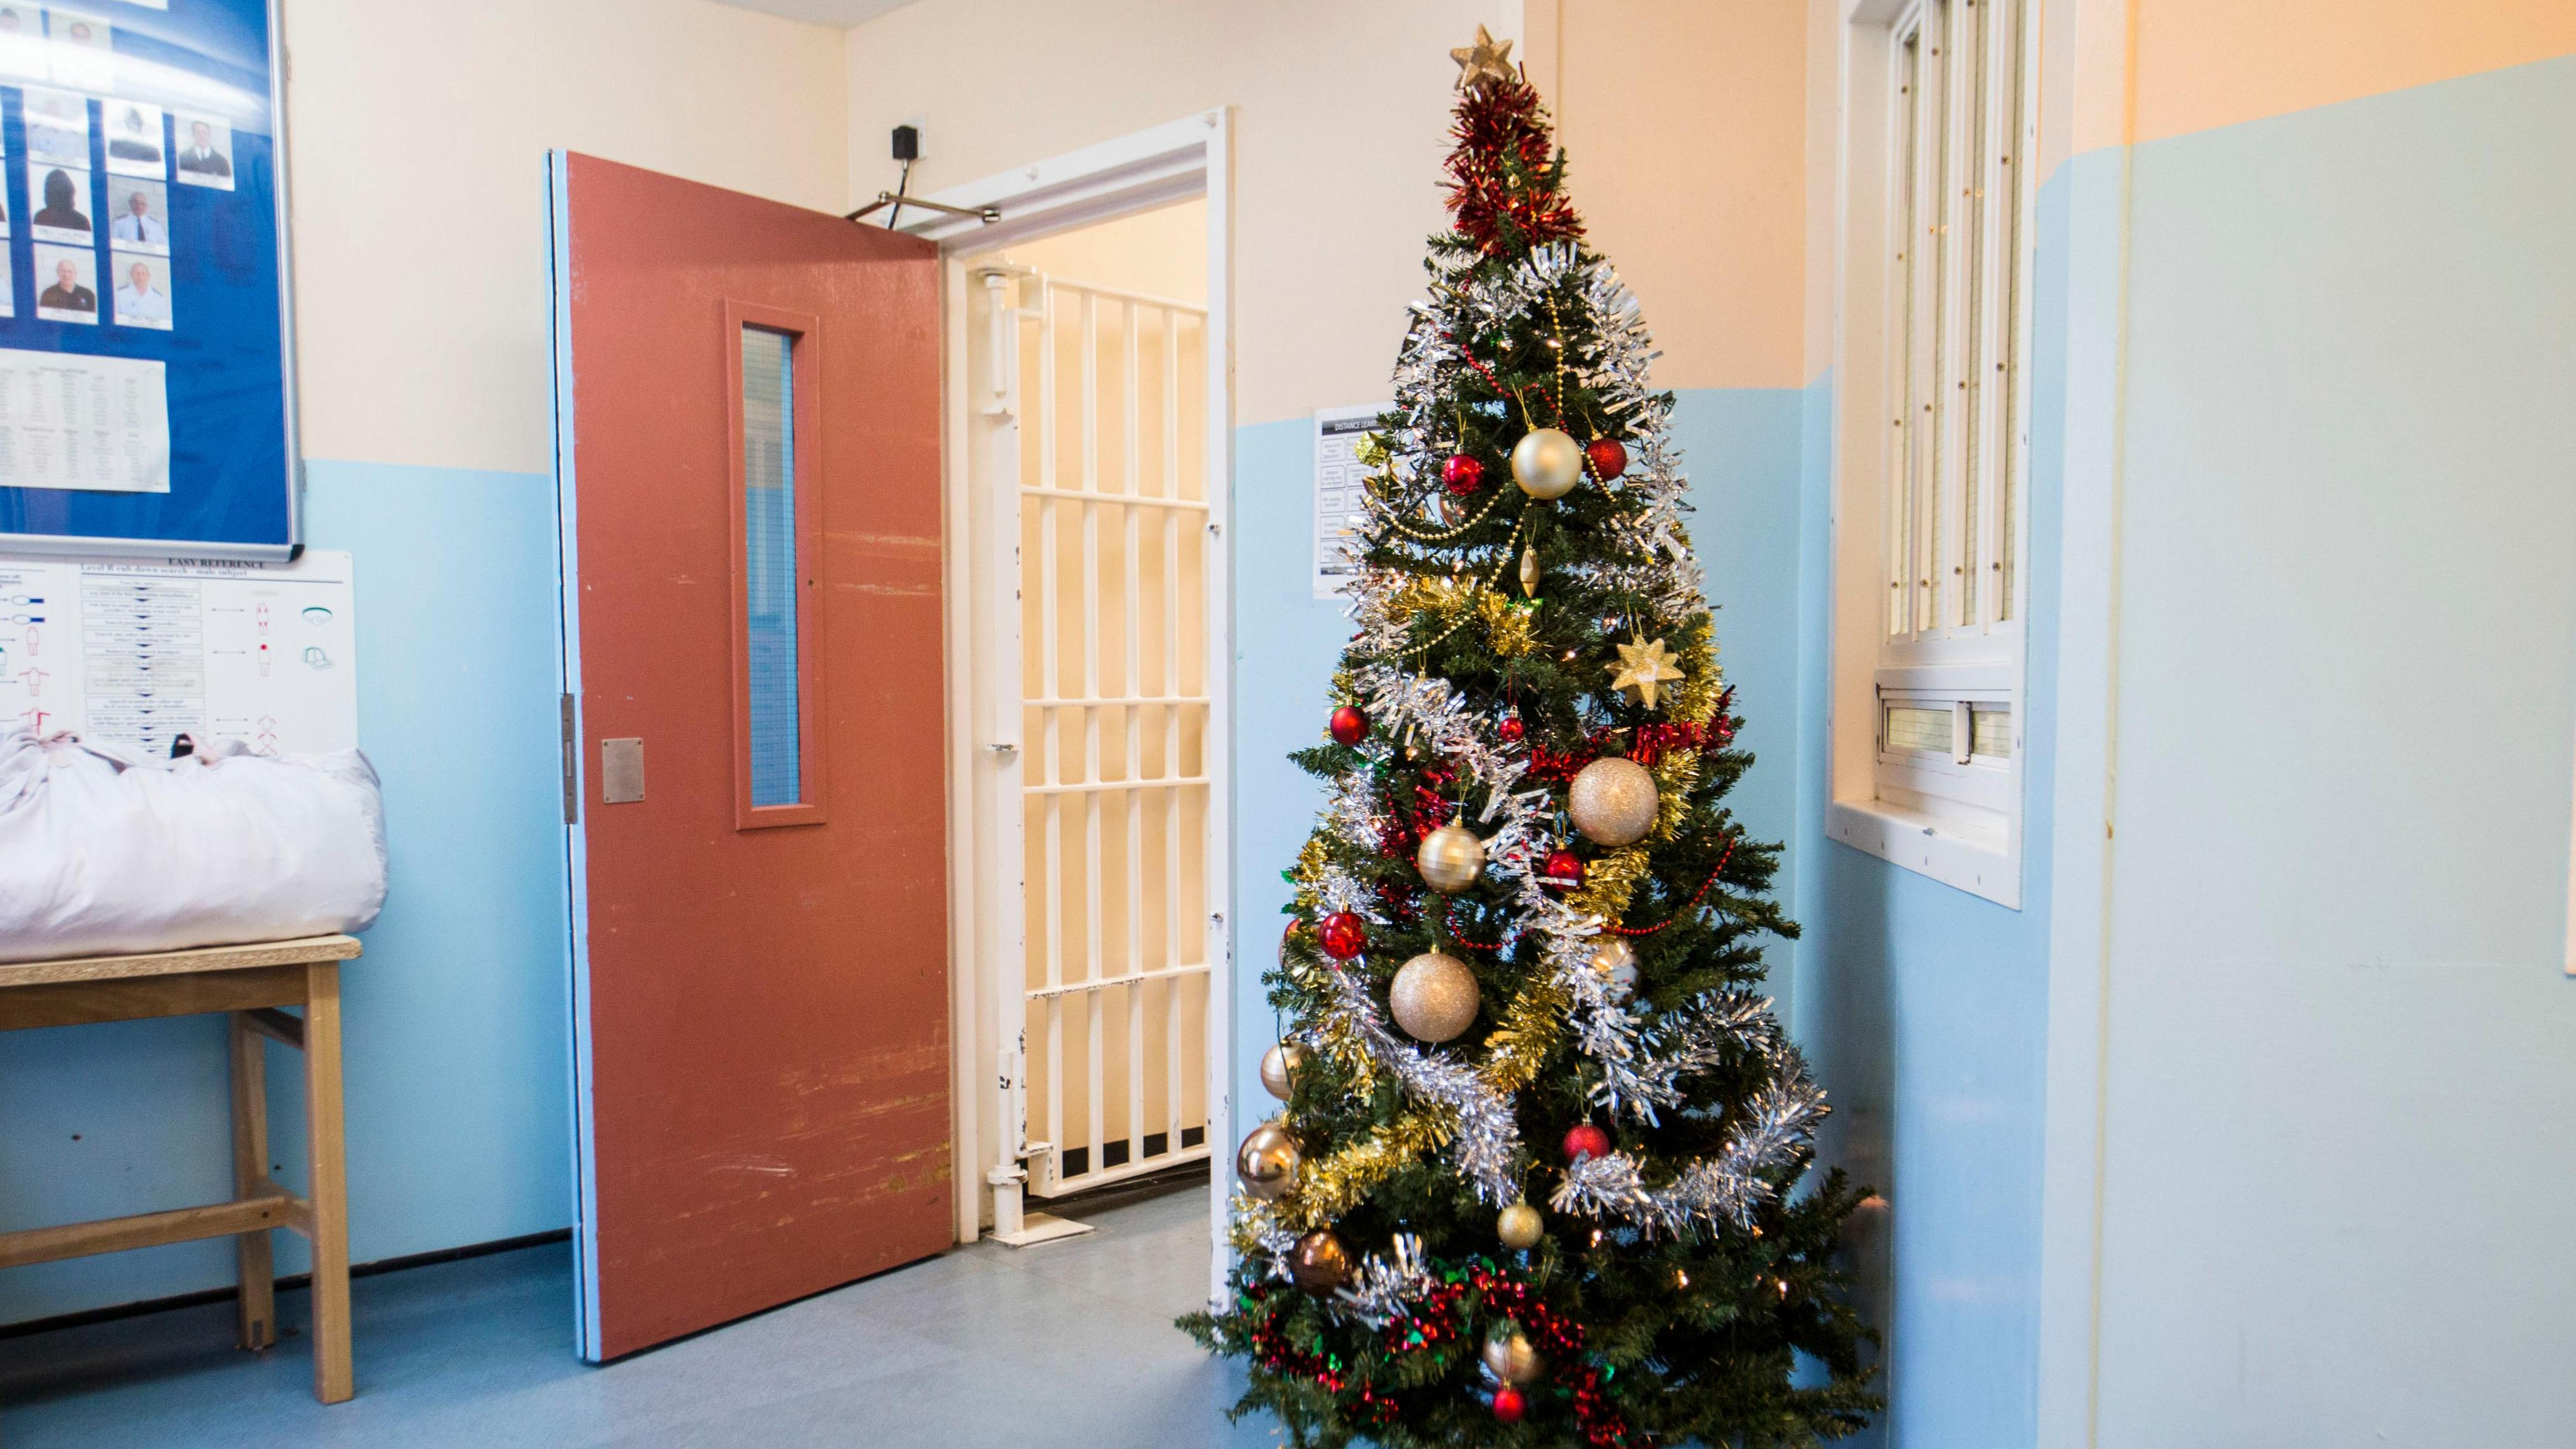 Prisons block Christmas cards soaked with drugs